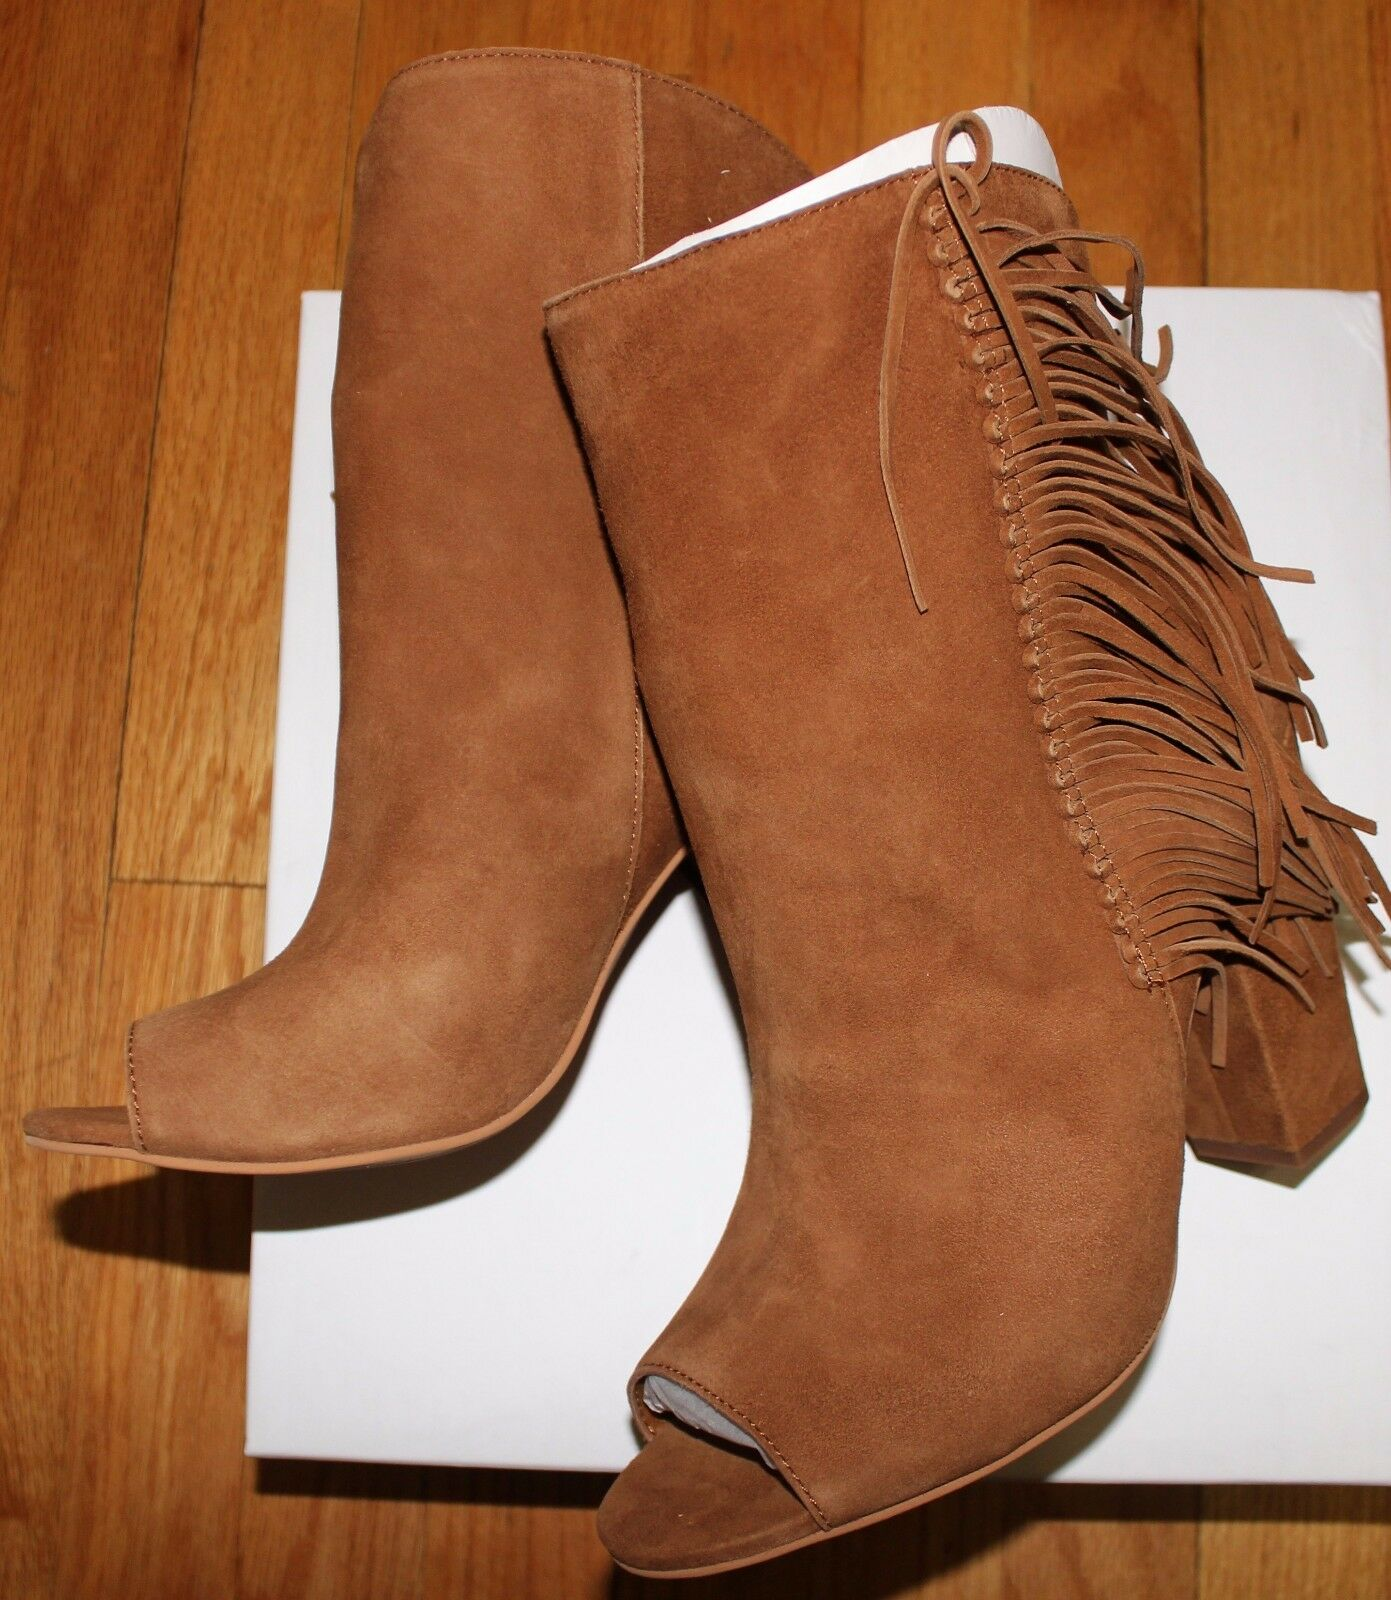 180 DOLCE VITA MAZARINE DARK SADDLE SUEDE BOOT SZ 10M